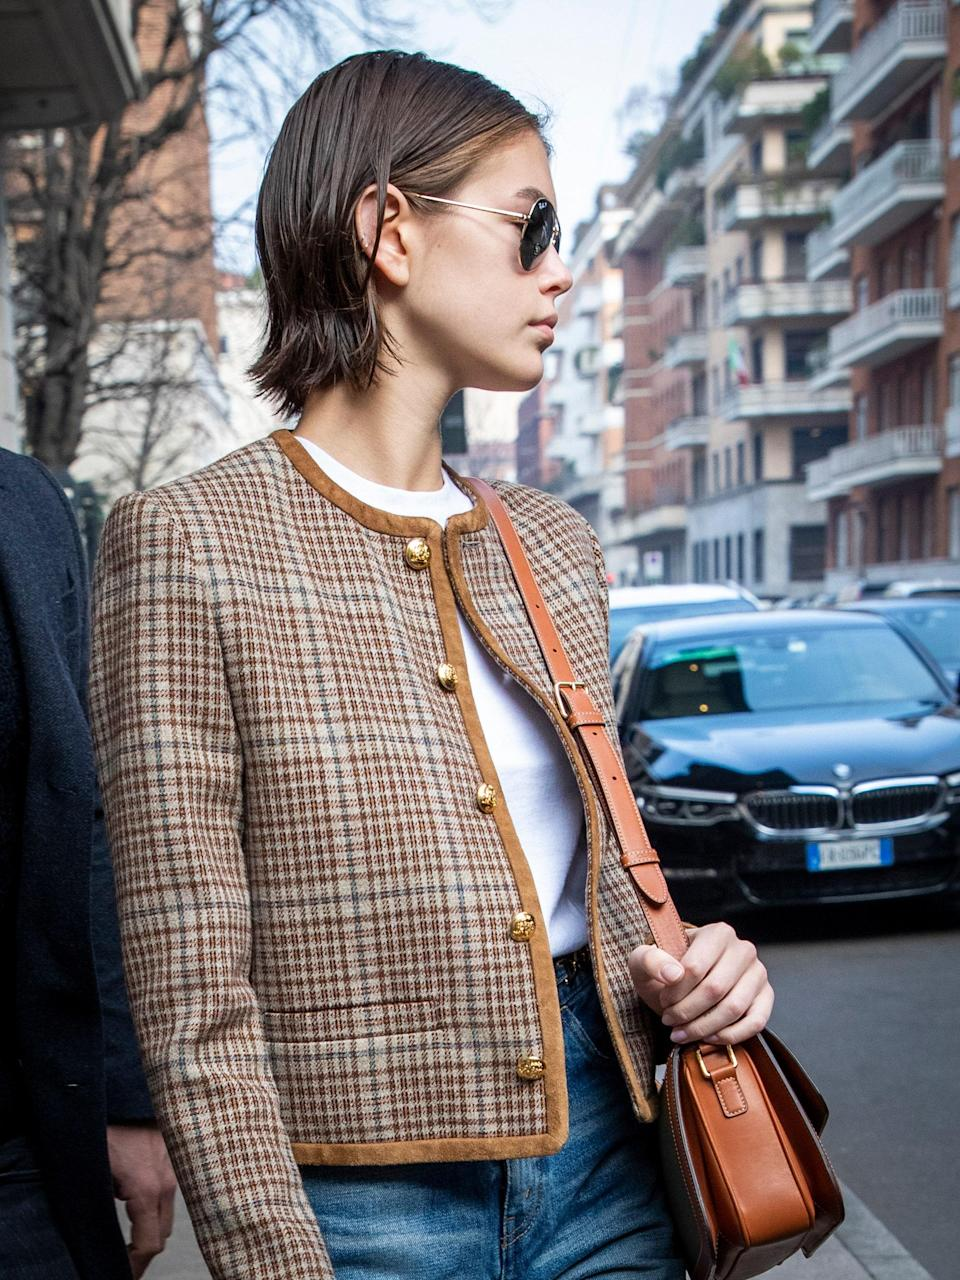 The jewel neckline blazer and Celine bag give this look the ultimate Parisienne touch.